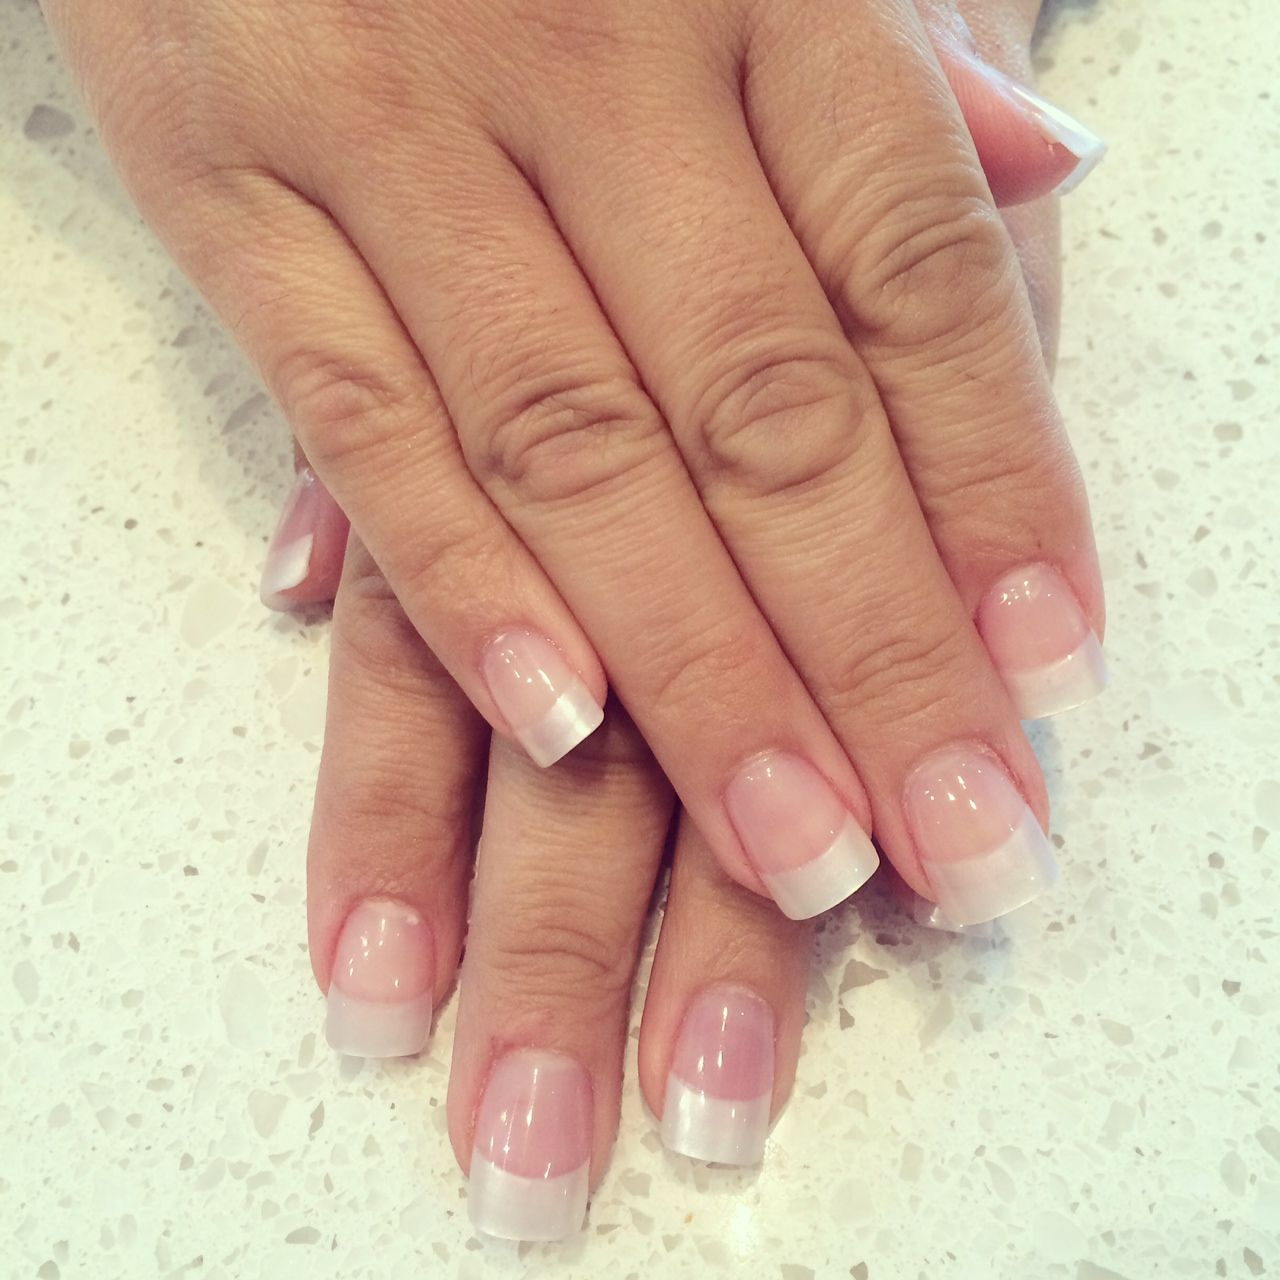 20 Great Ideas How To Make Acrylic Nails By Yourself 1 In 2020 White Acrylic Nails Pretty Acrylic Nails Best Acrylic Nails